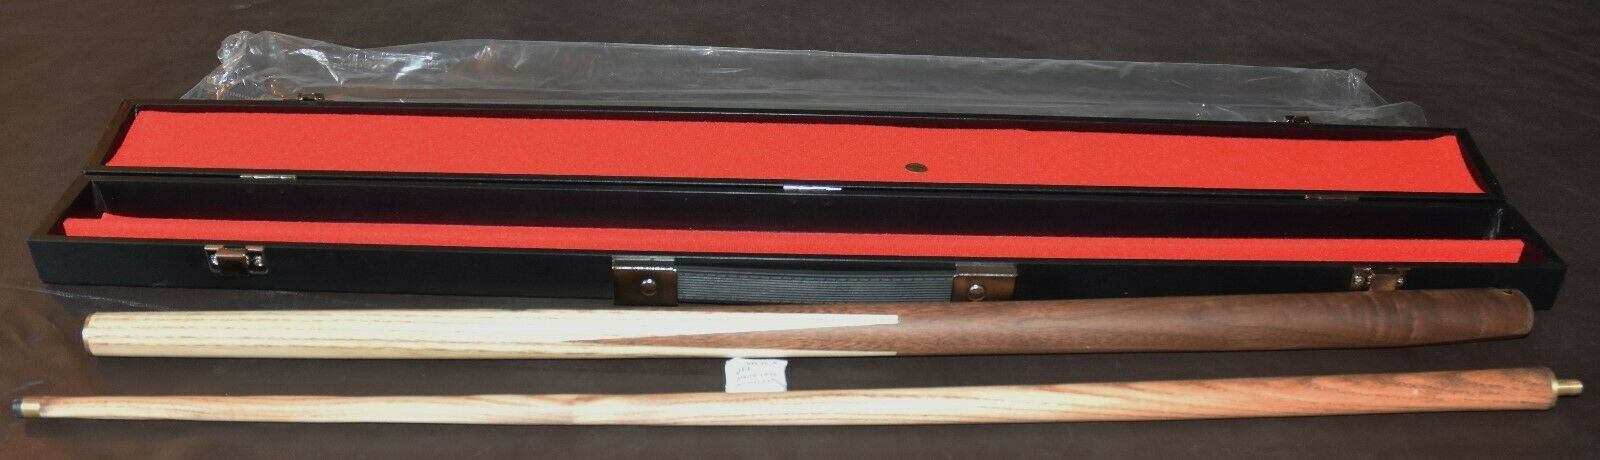 Snooker/Pool New 57 inch Two Piece Cue with Hard Case